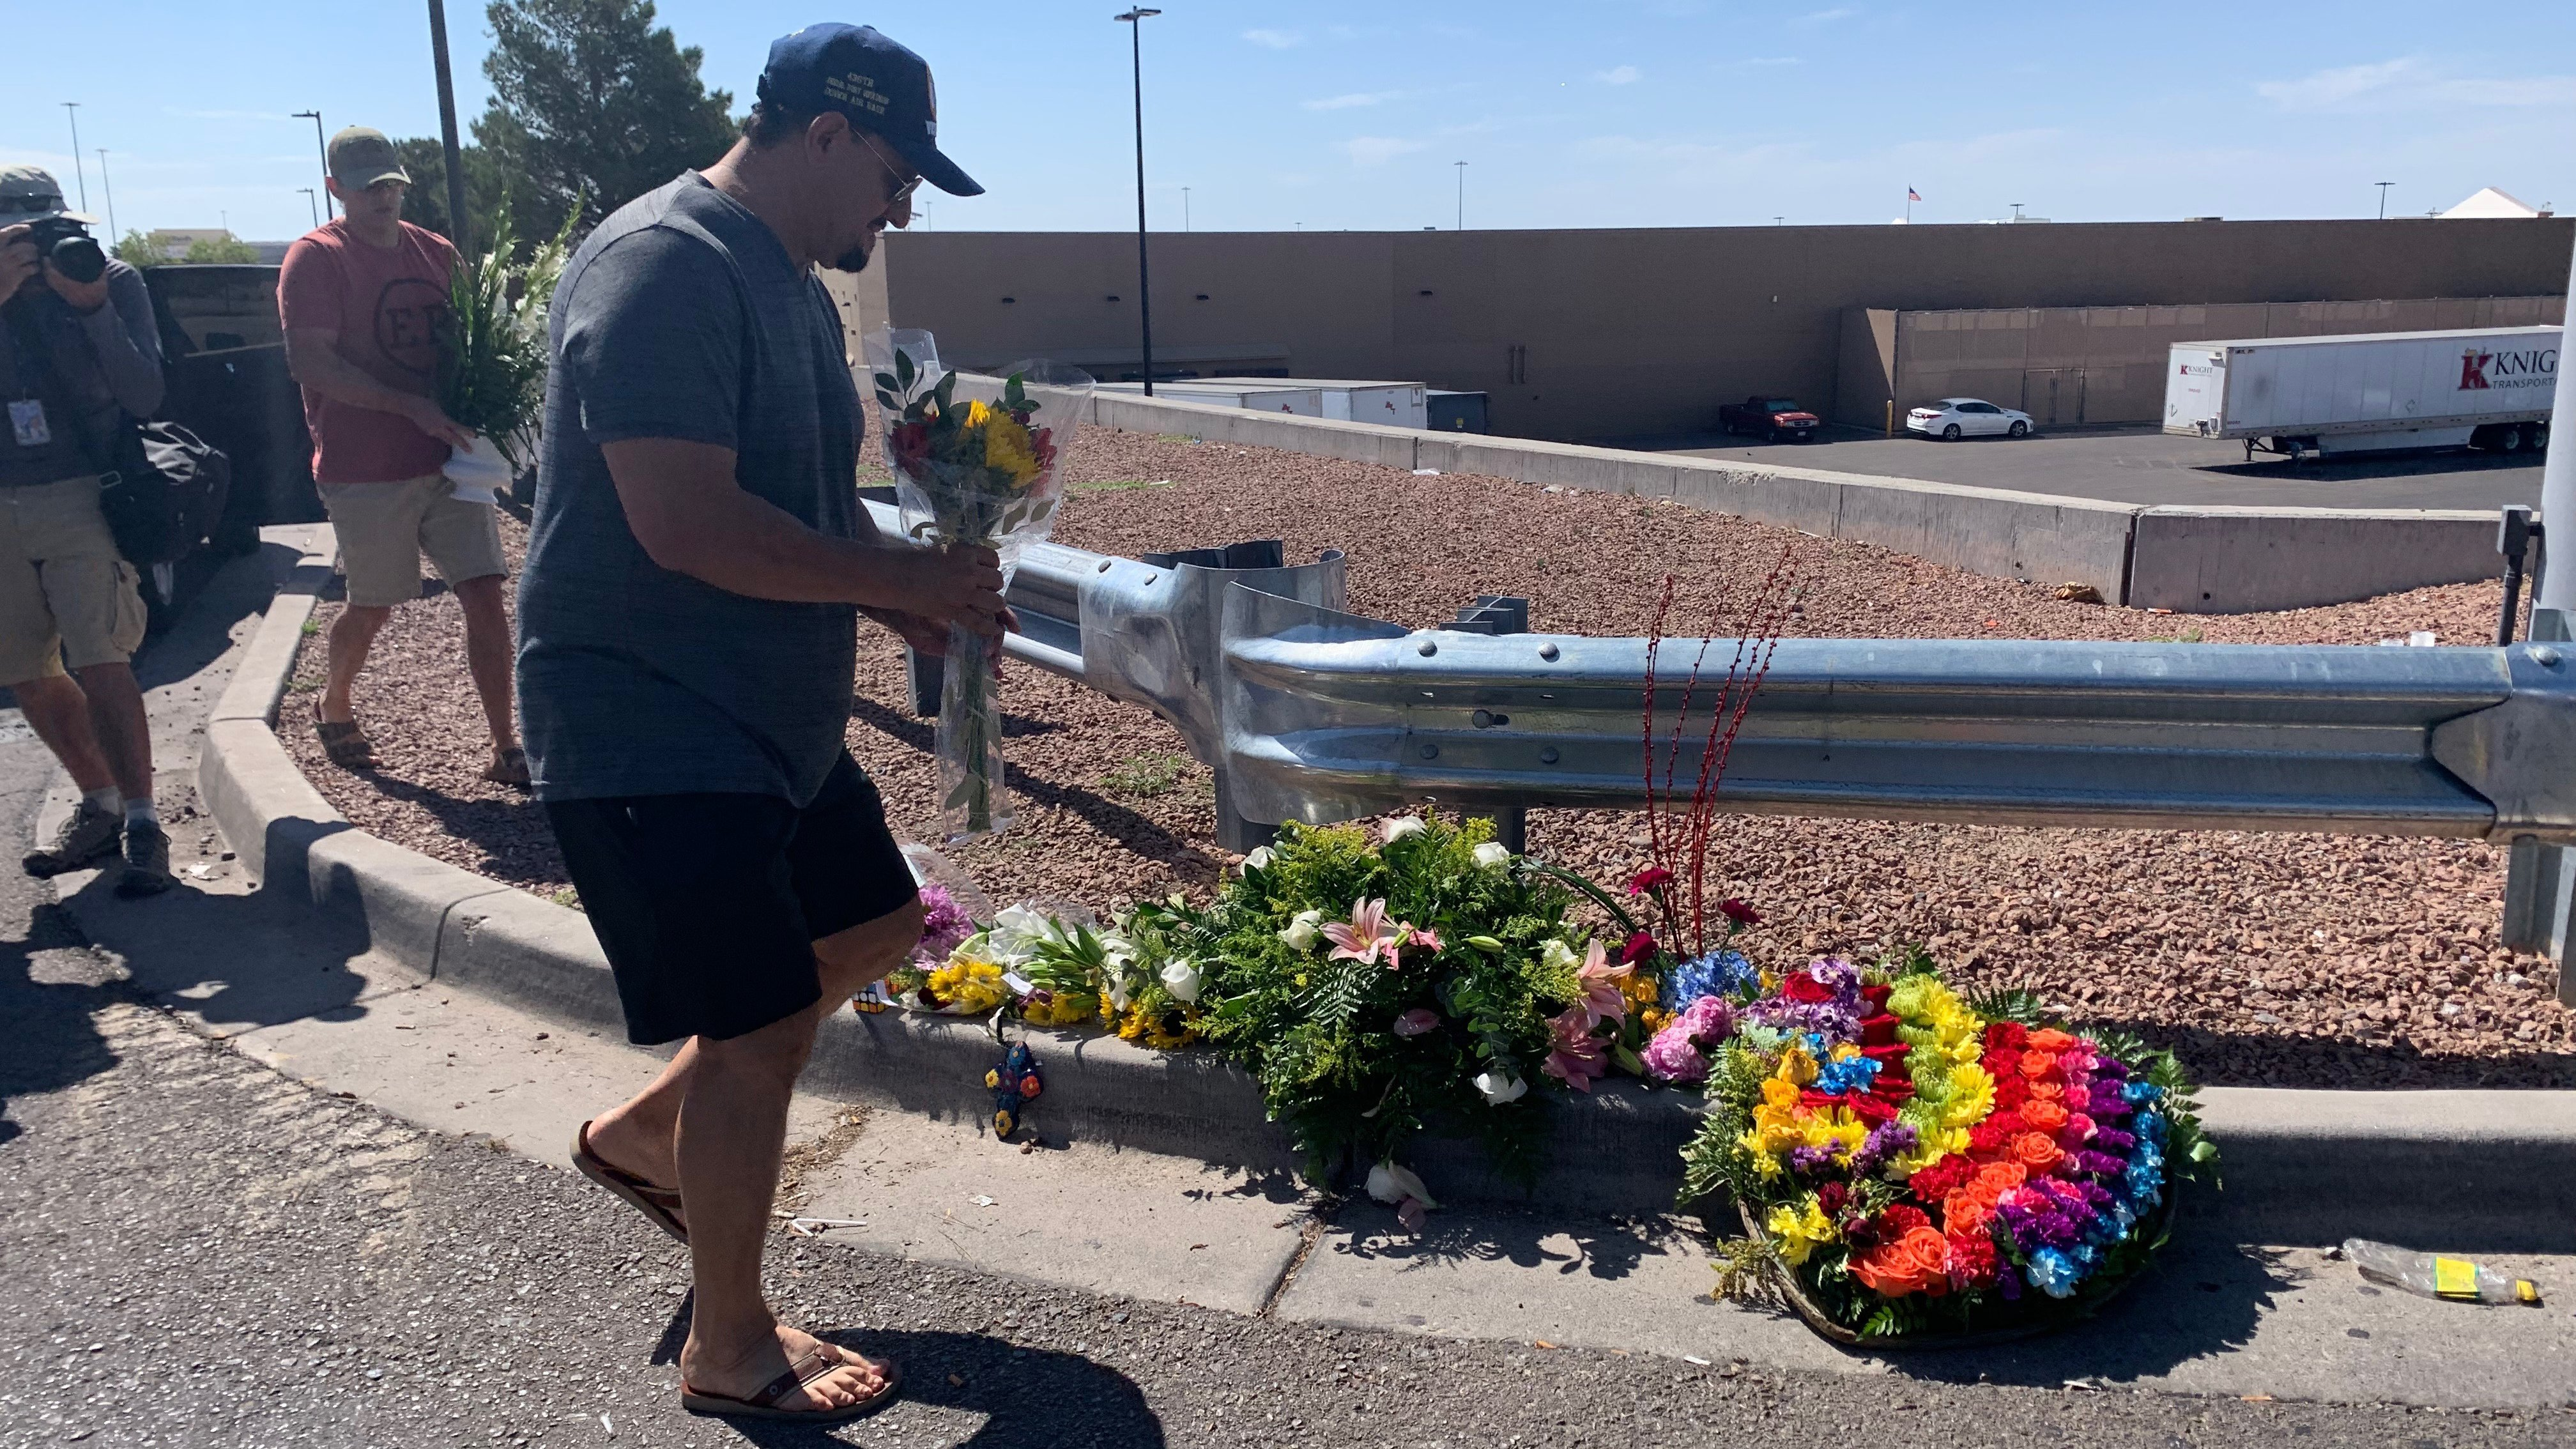 Walmart to reopen store where El Paso massacre took place with memorial for victims